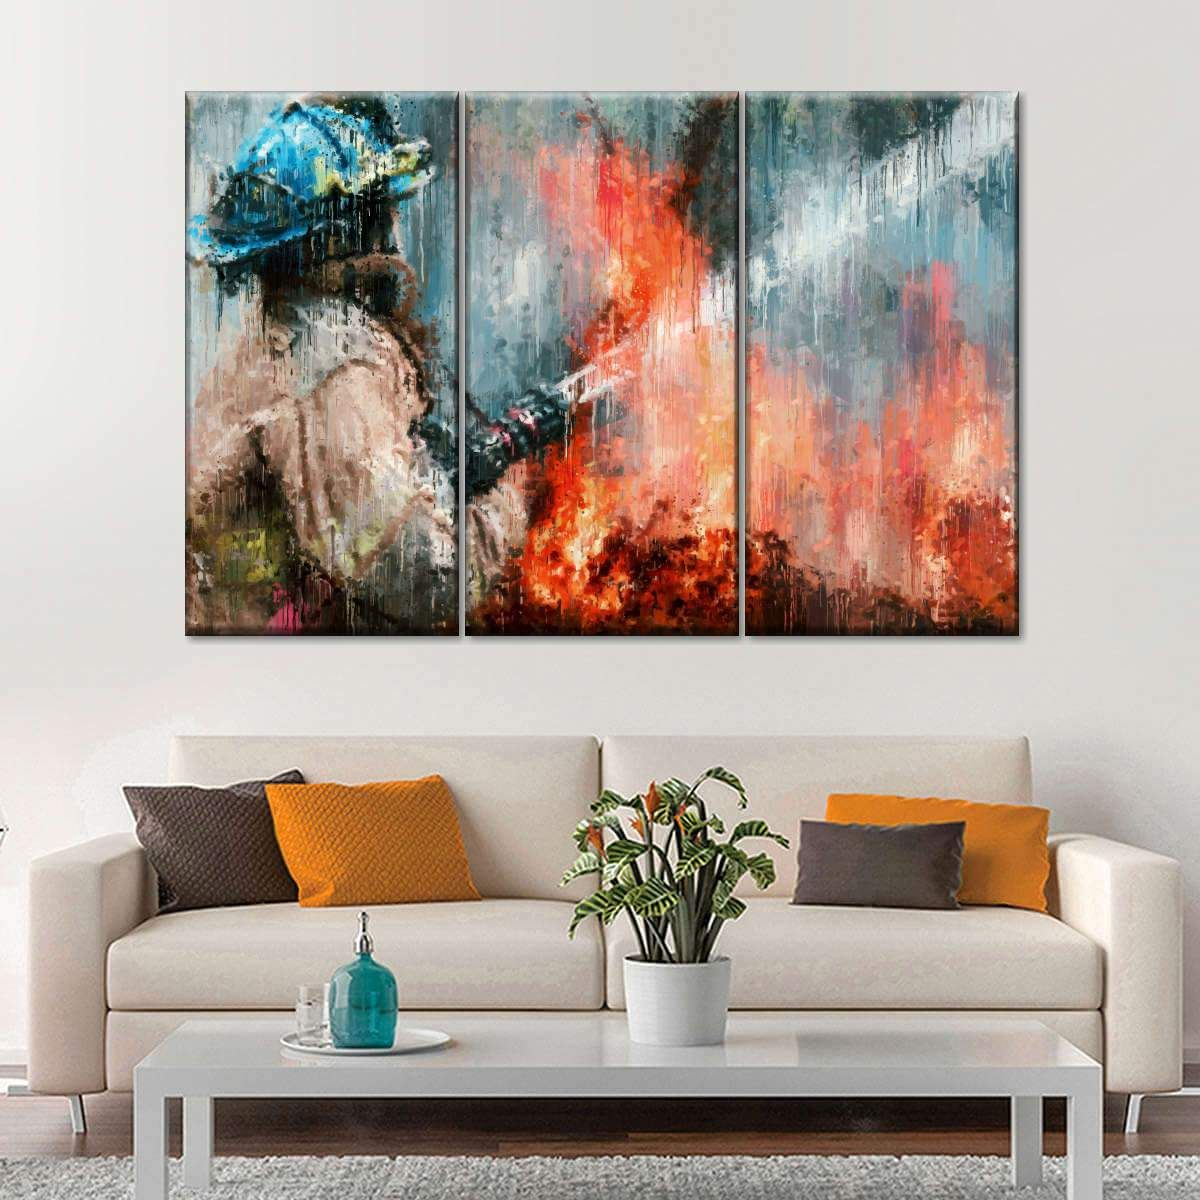 Abstract Firefighter Multi Panel Canvas Wall Art In 2020 Firefighter Art Canvas Wall Art Art